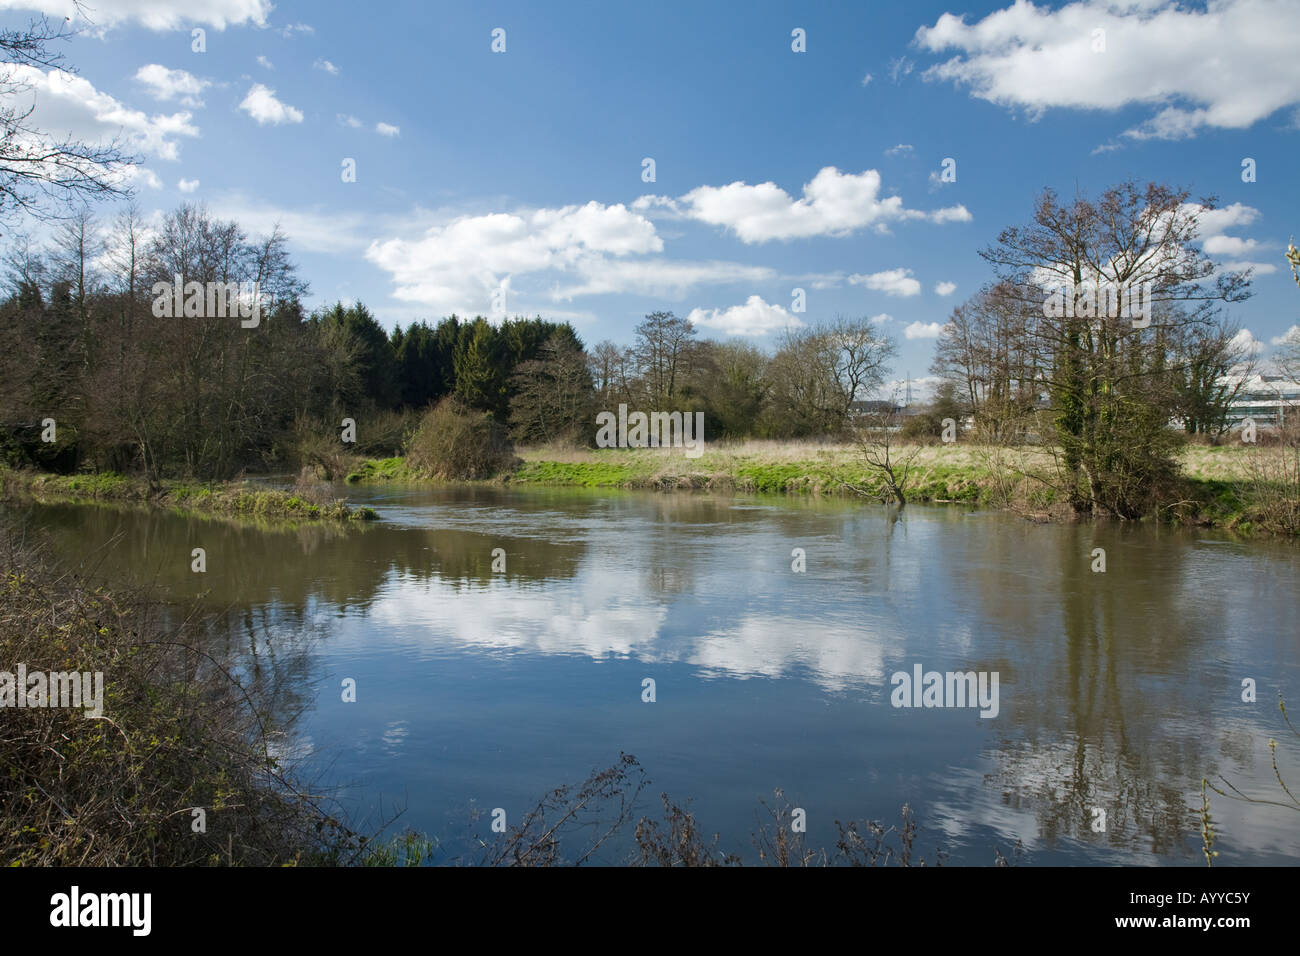 Junction of River Kennet and Kennet and Avon Canal below Garston lock Theale Reading Berkshire - Stock Image